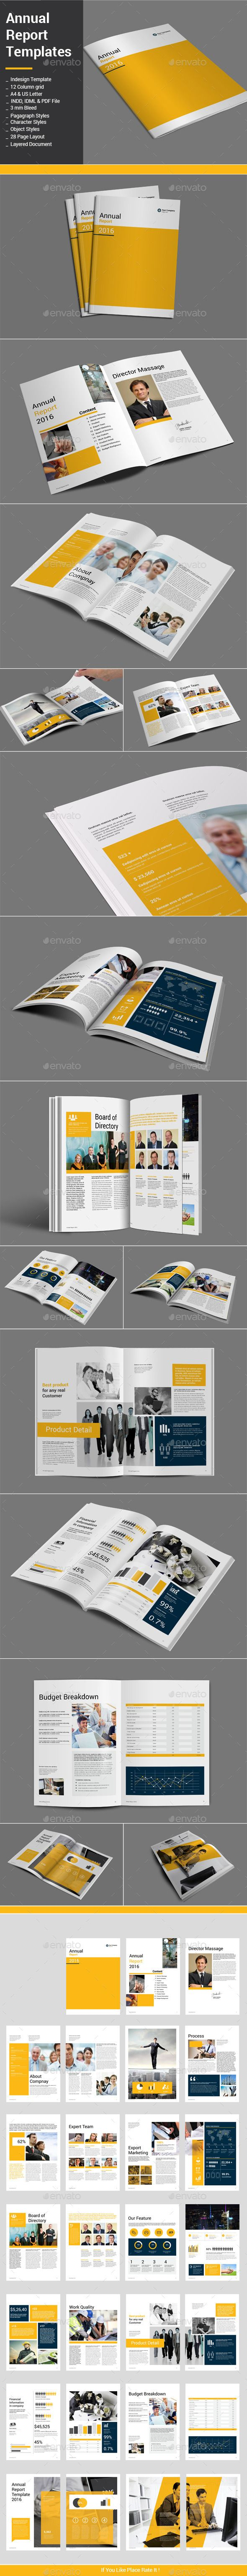 Annual Report Templates #design Download: http://graphicriver.net/item/annual-report-templates/12750573?ref=ksioks